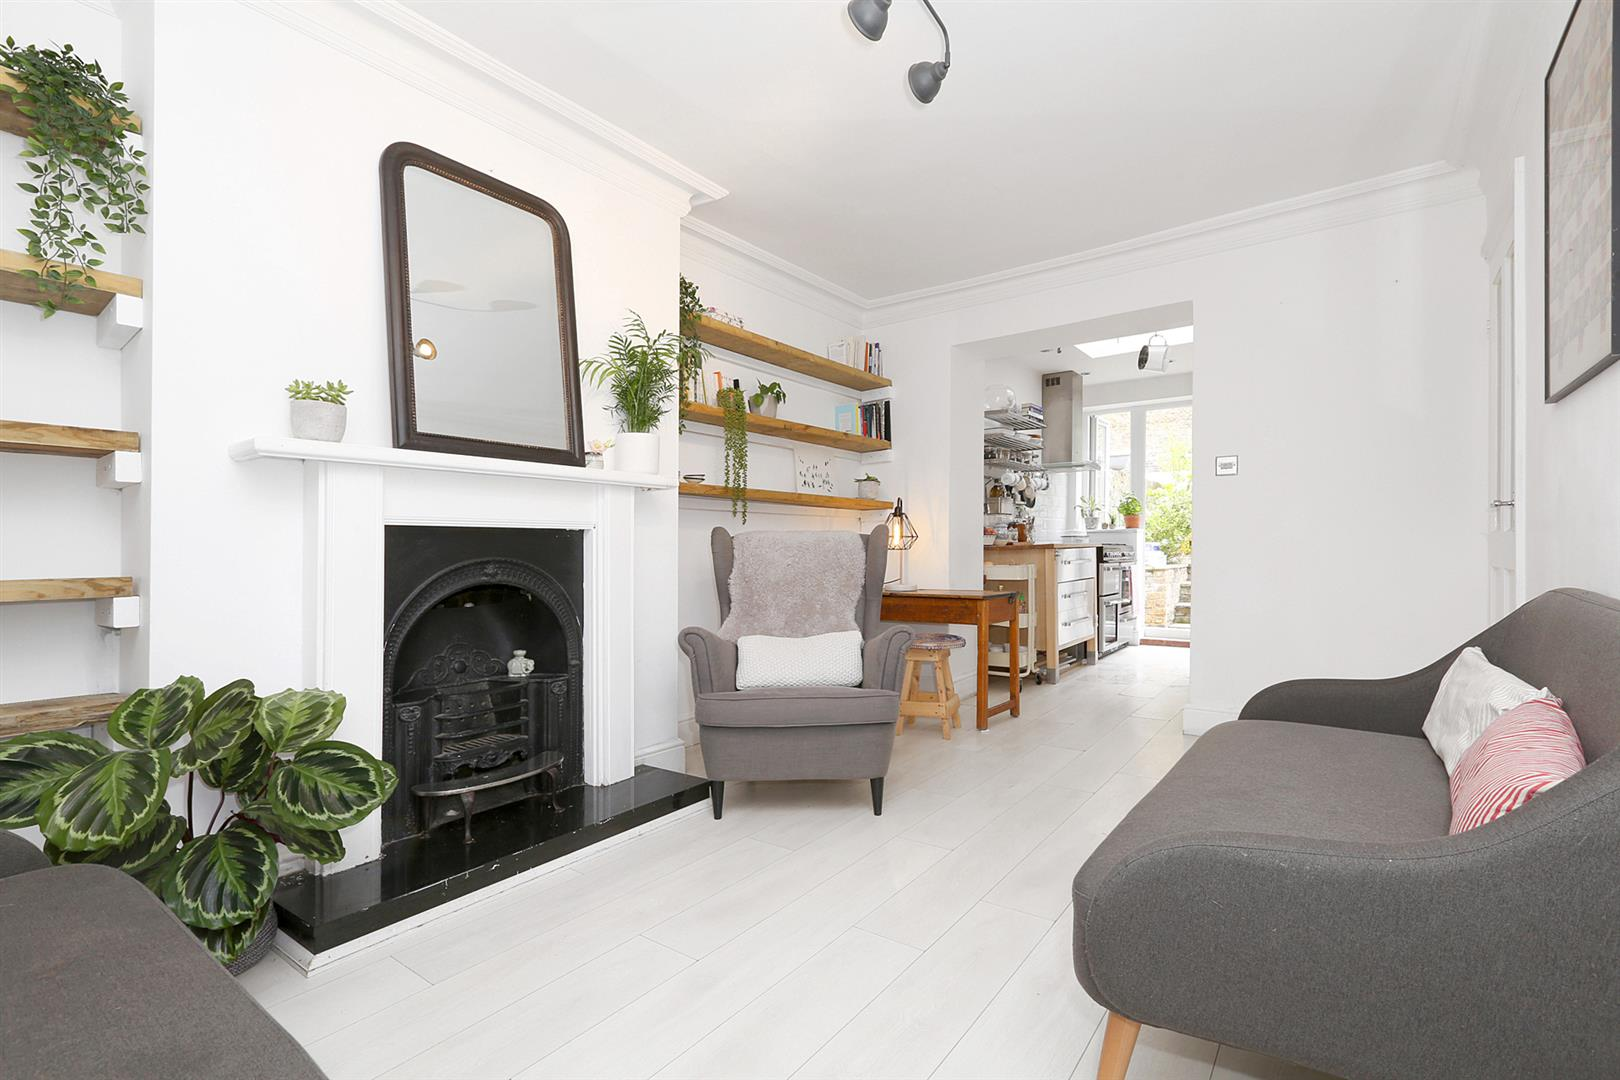 A photo of a open plan living room with a cast iron fire place and indoor plant.